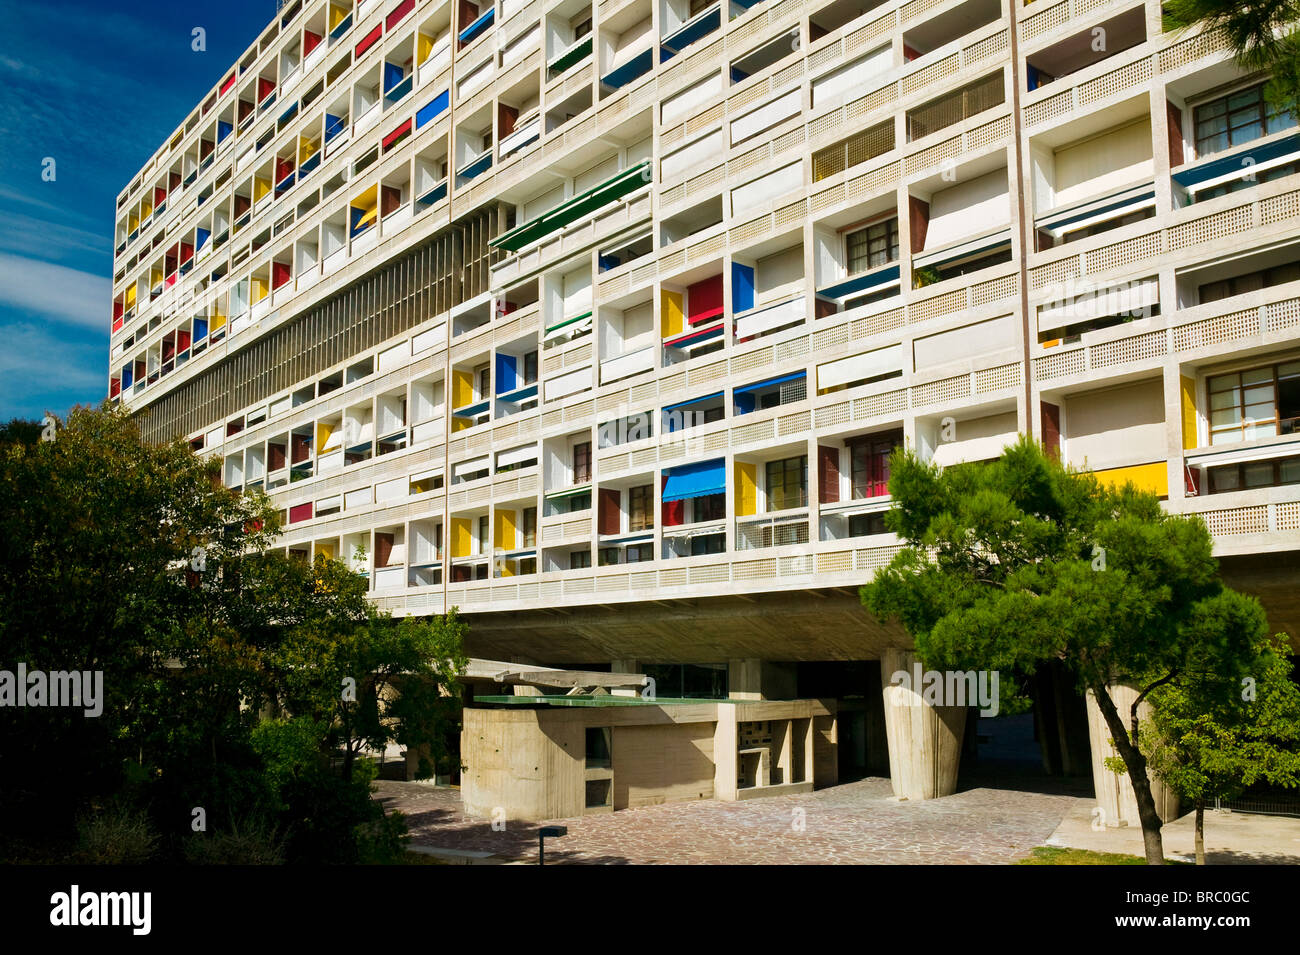 la cite radieuse le corbusier marseille provence france stock photo royalty free image. Black Bedroom Furniture Sets. Home Design Ideas